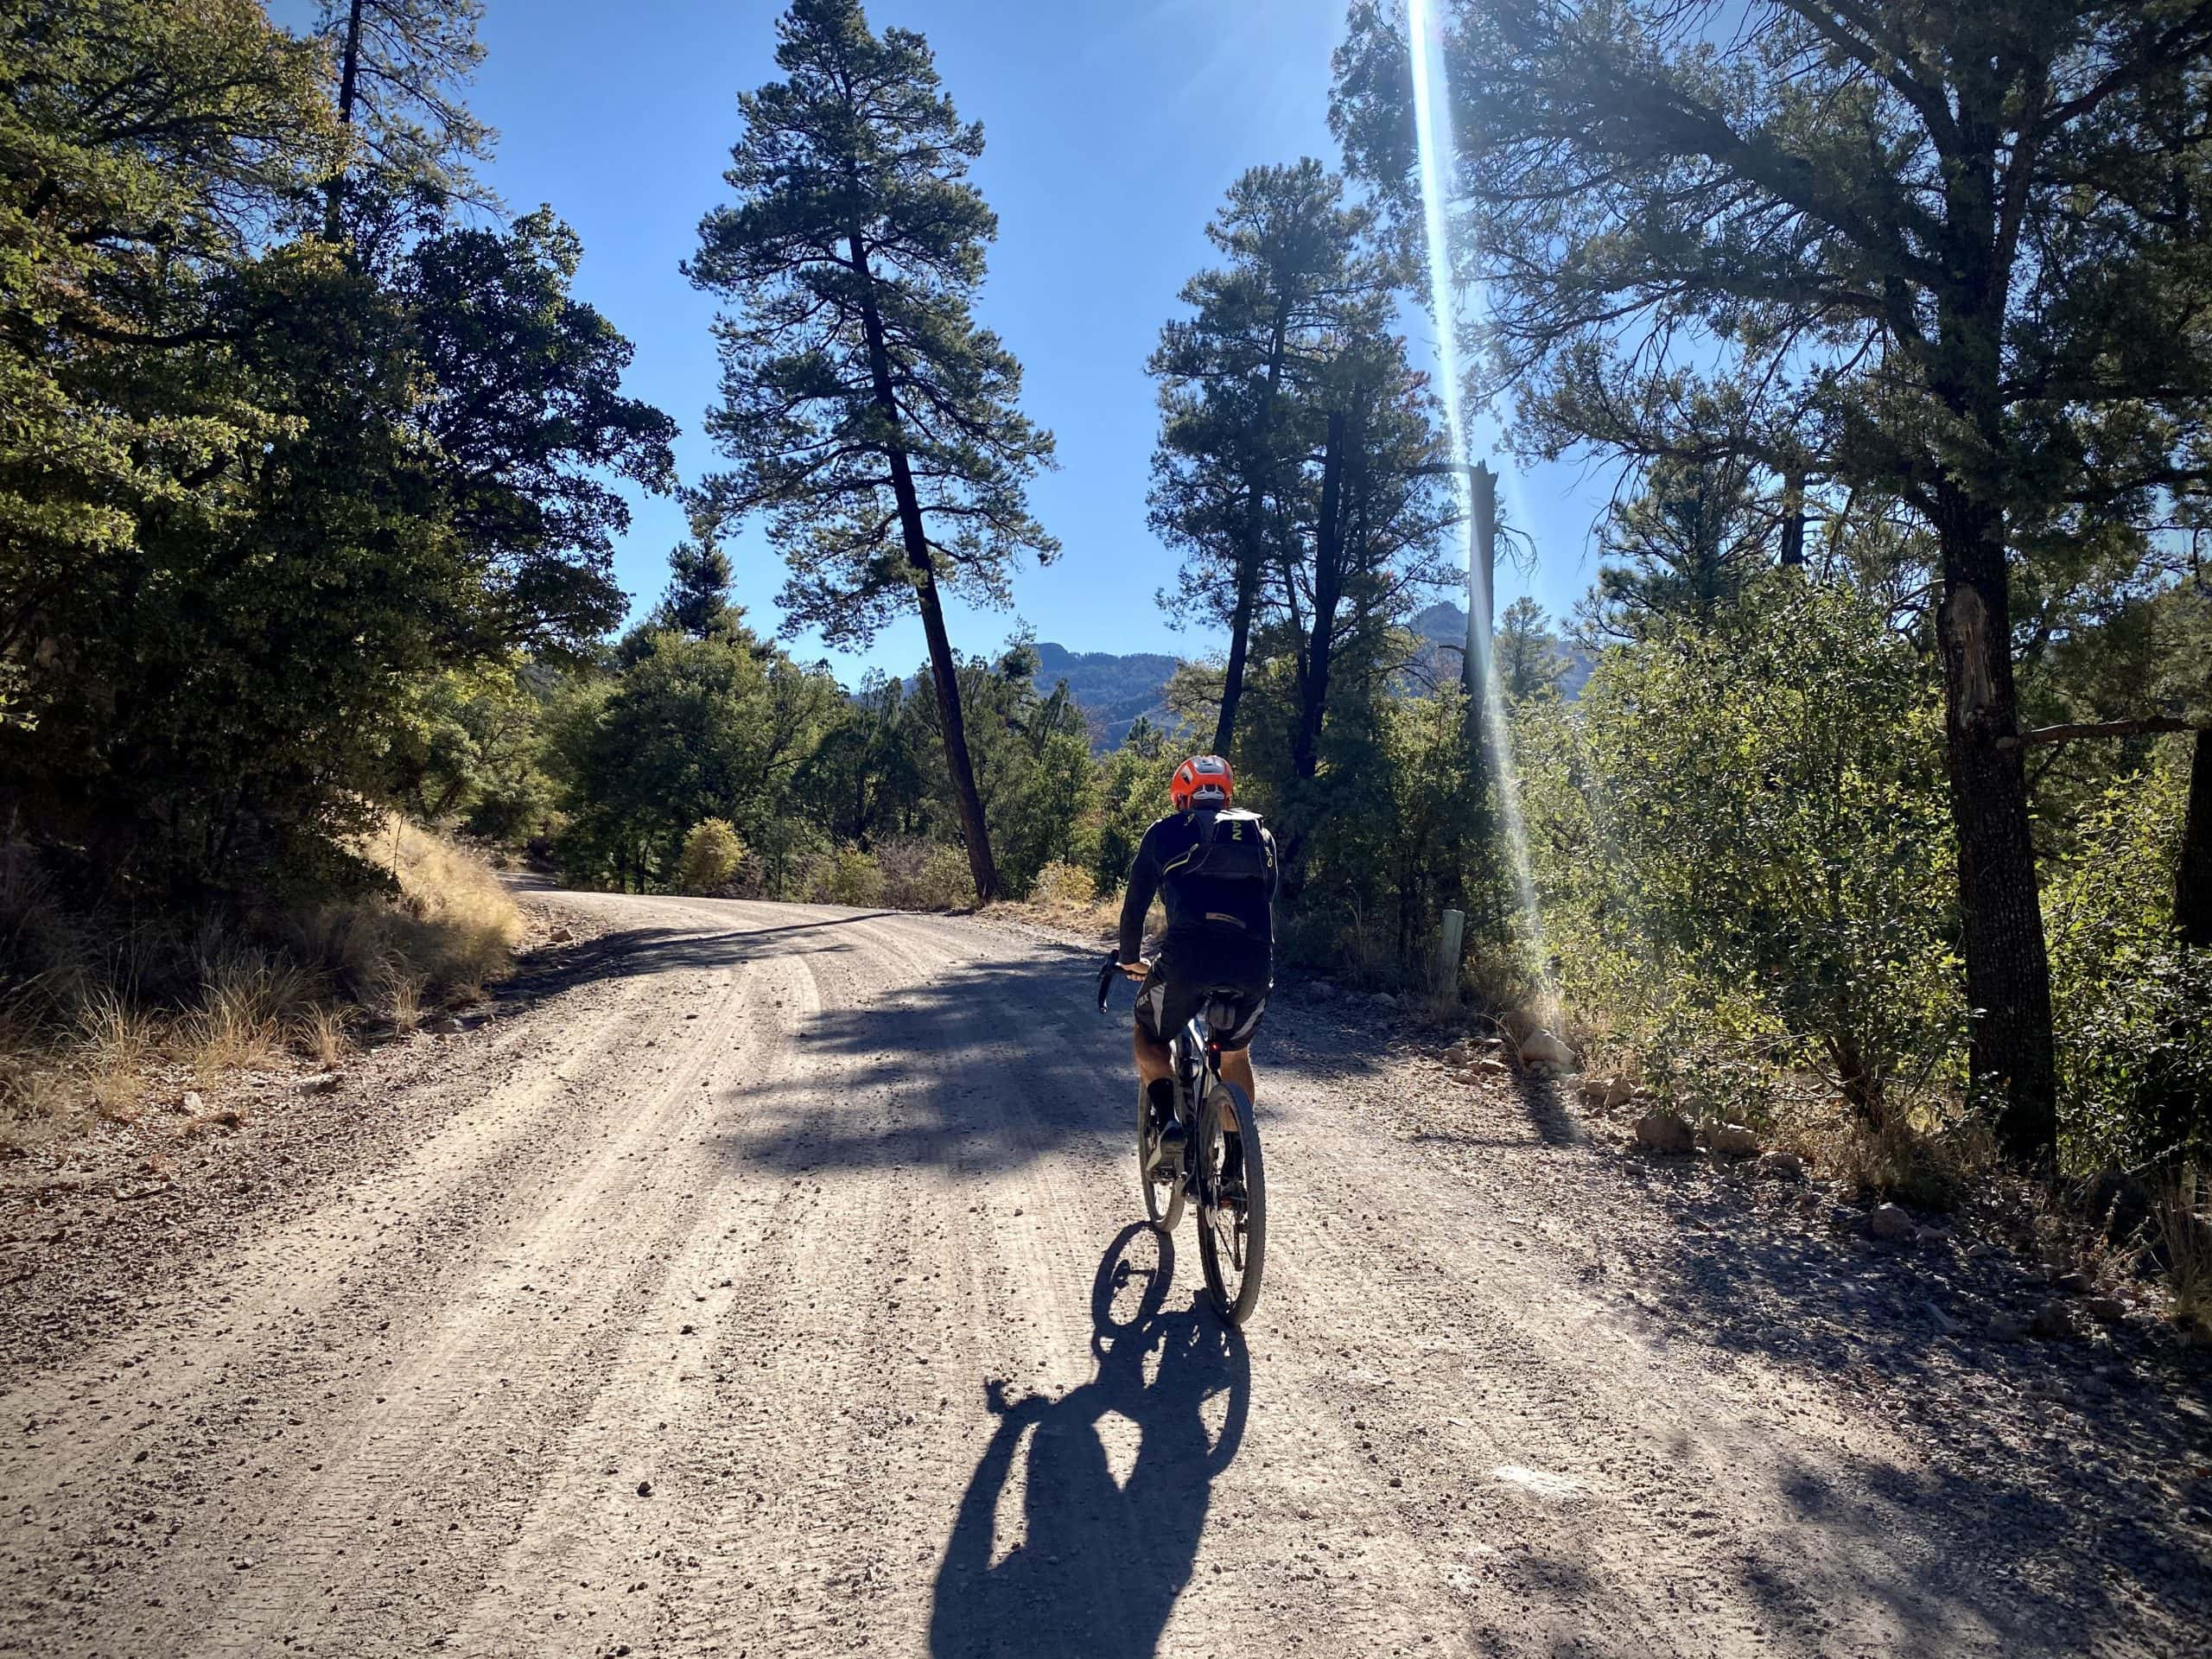 Cyclist on the Pinery Canyon road in the Chiricahua Mountains.